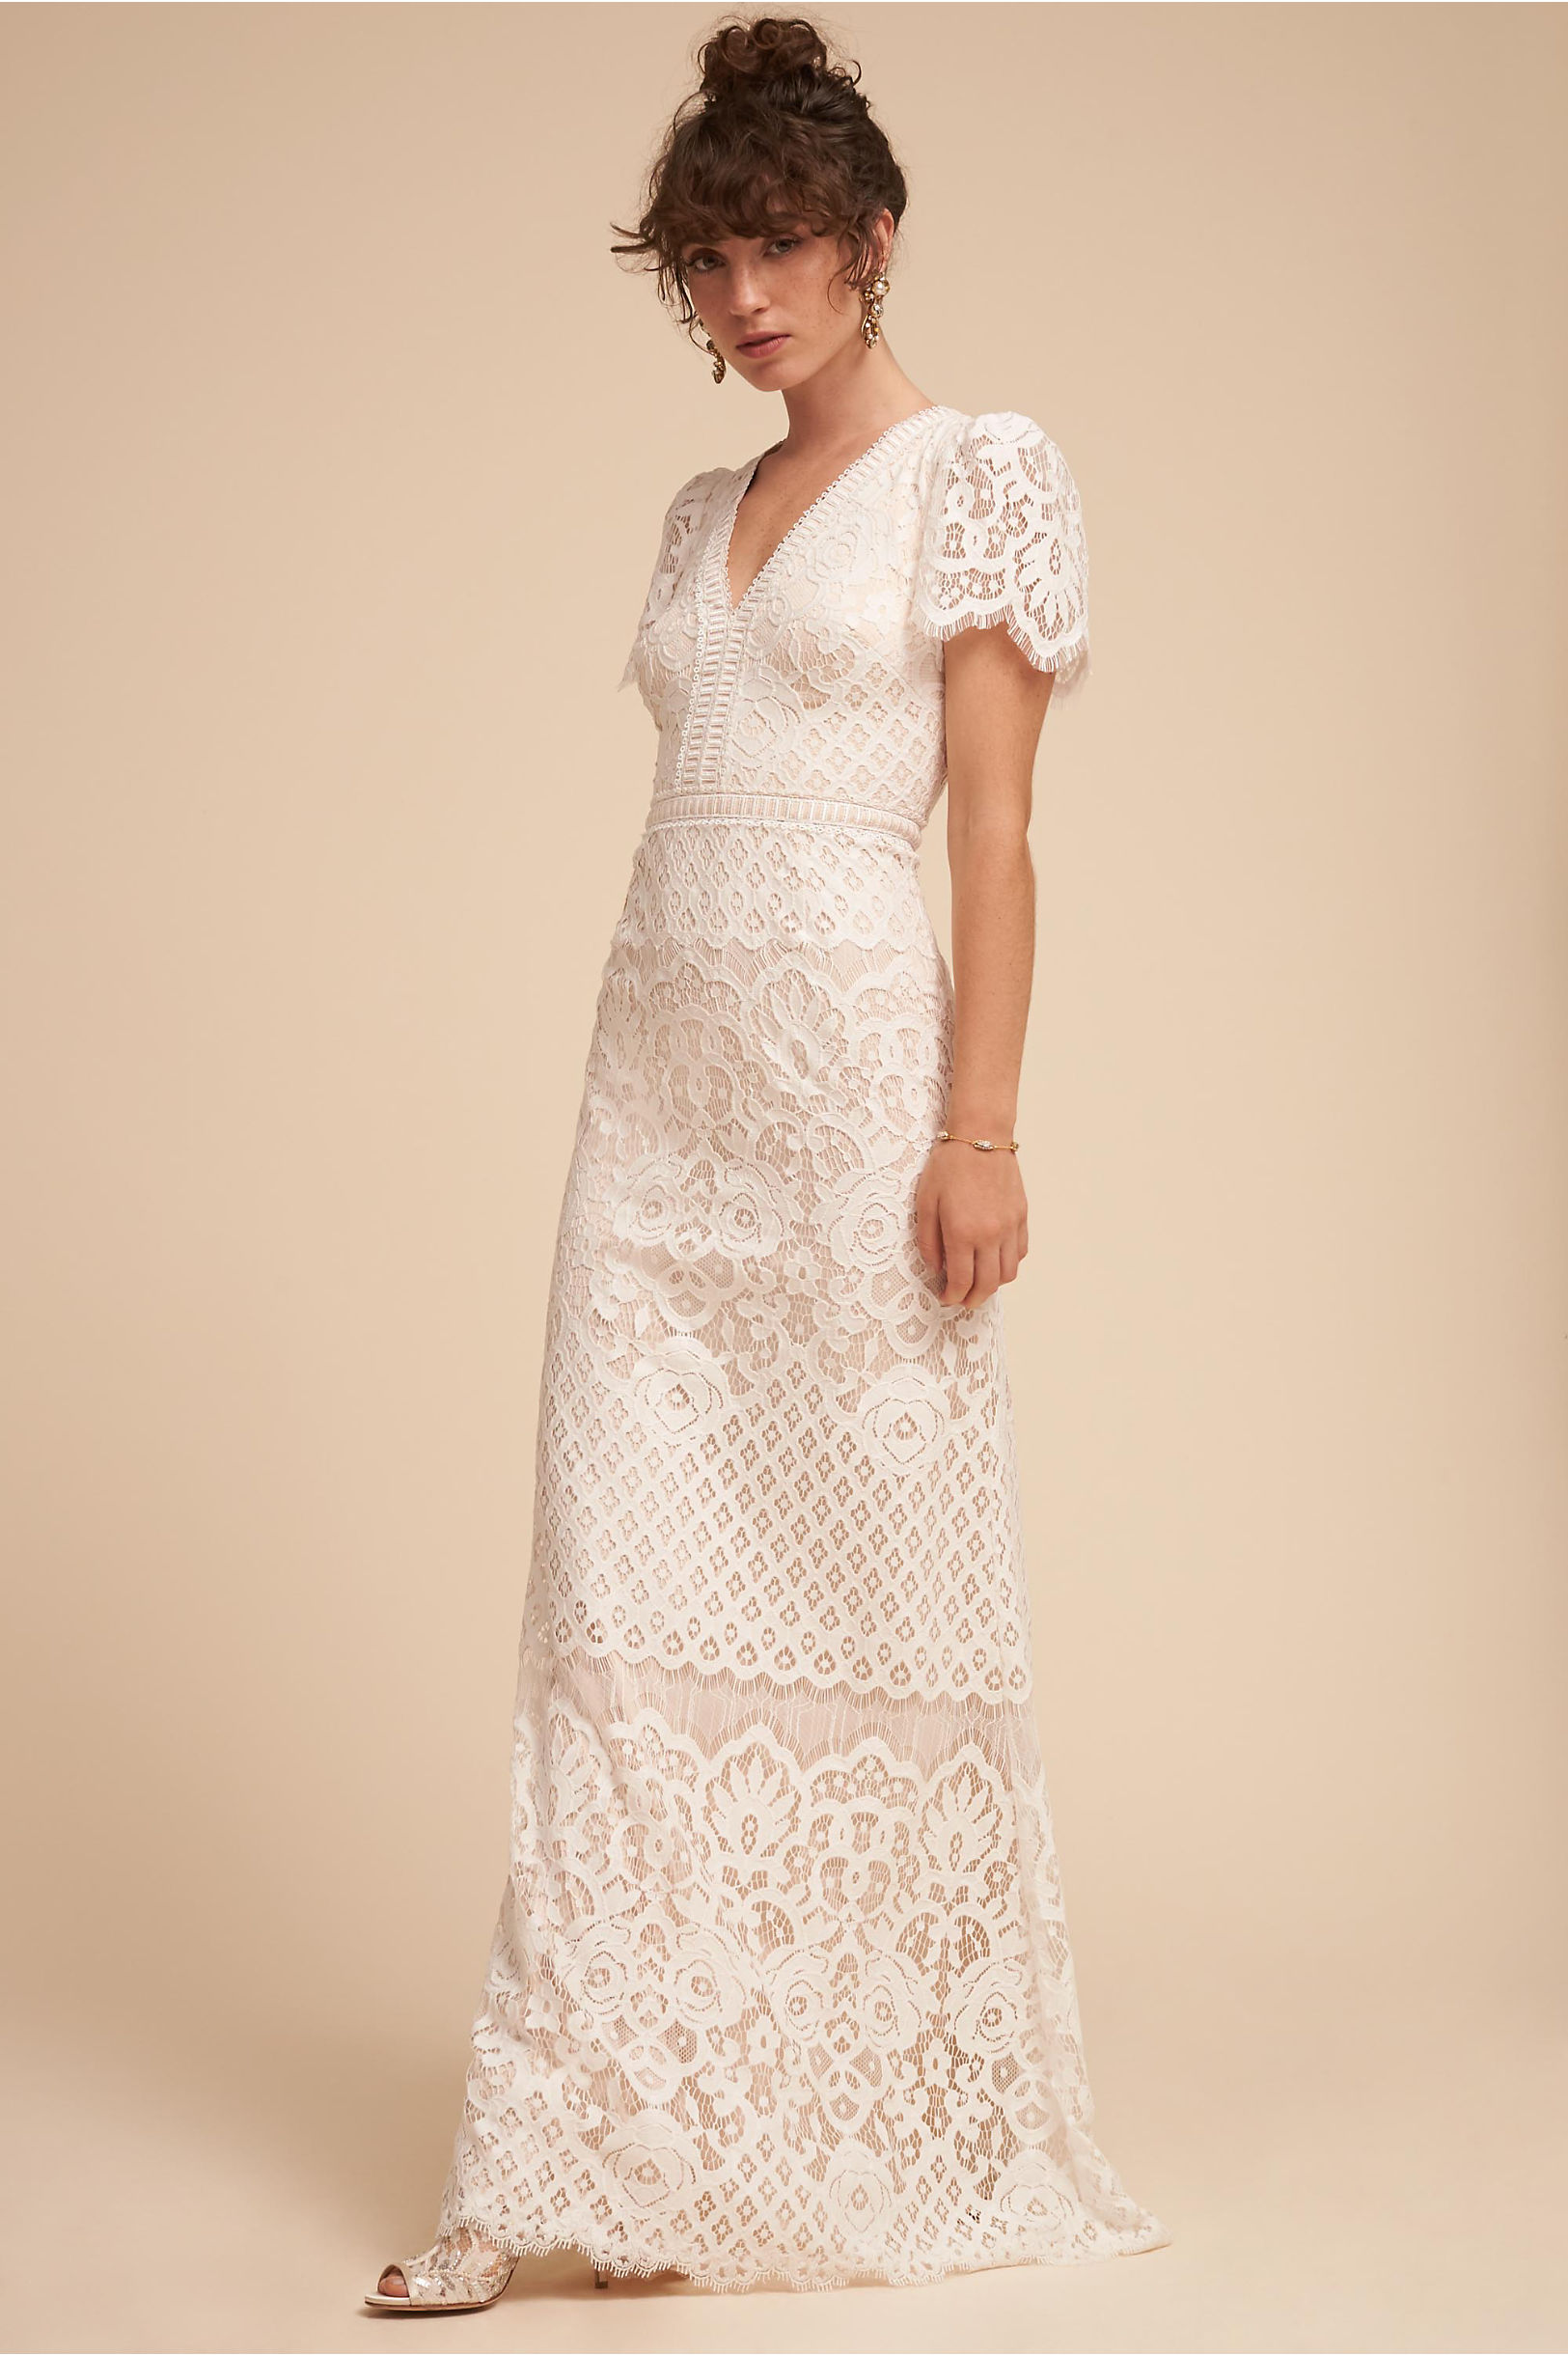 Minuet lace wedding dress short sleeves vintage style tadashi shoji bhldn spring 2018